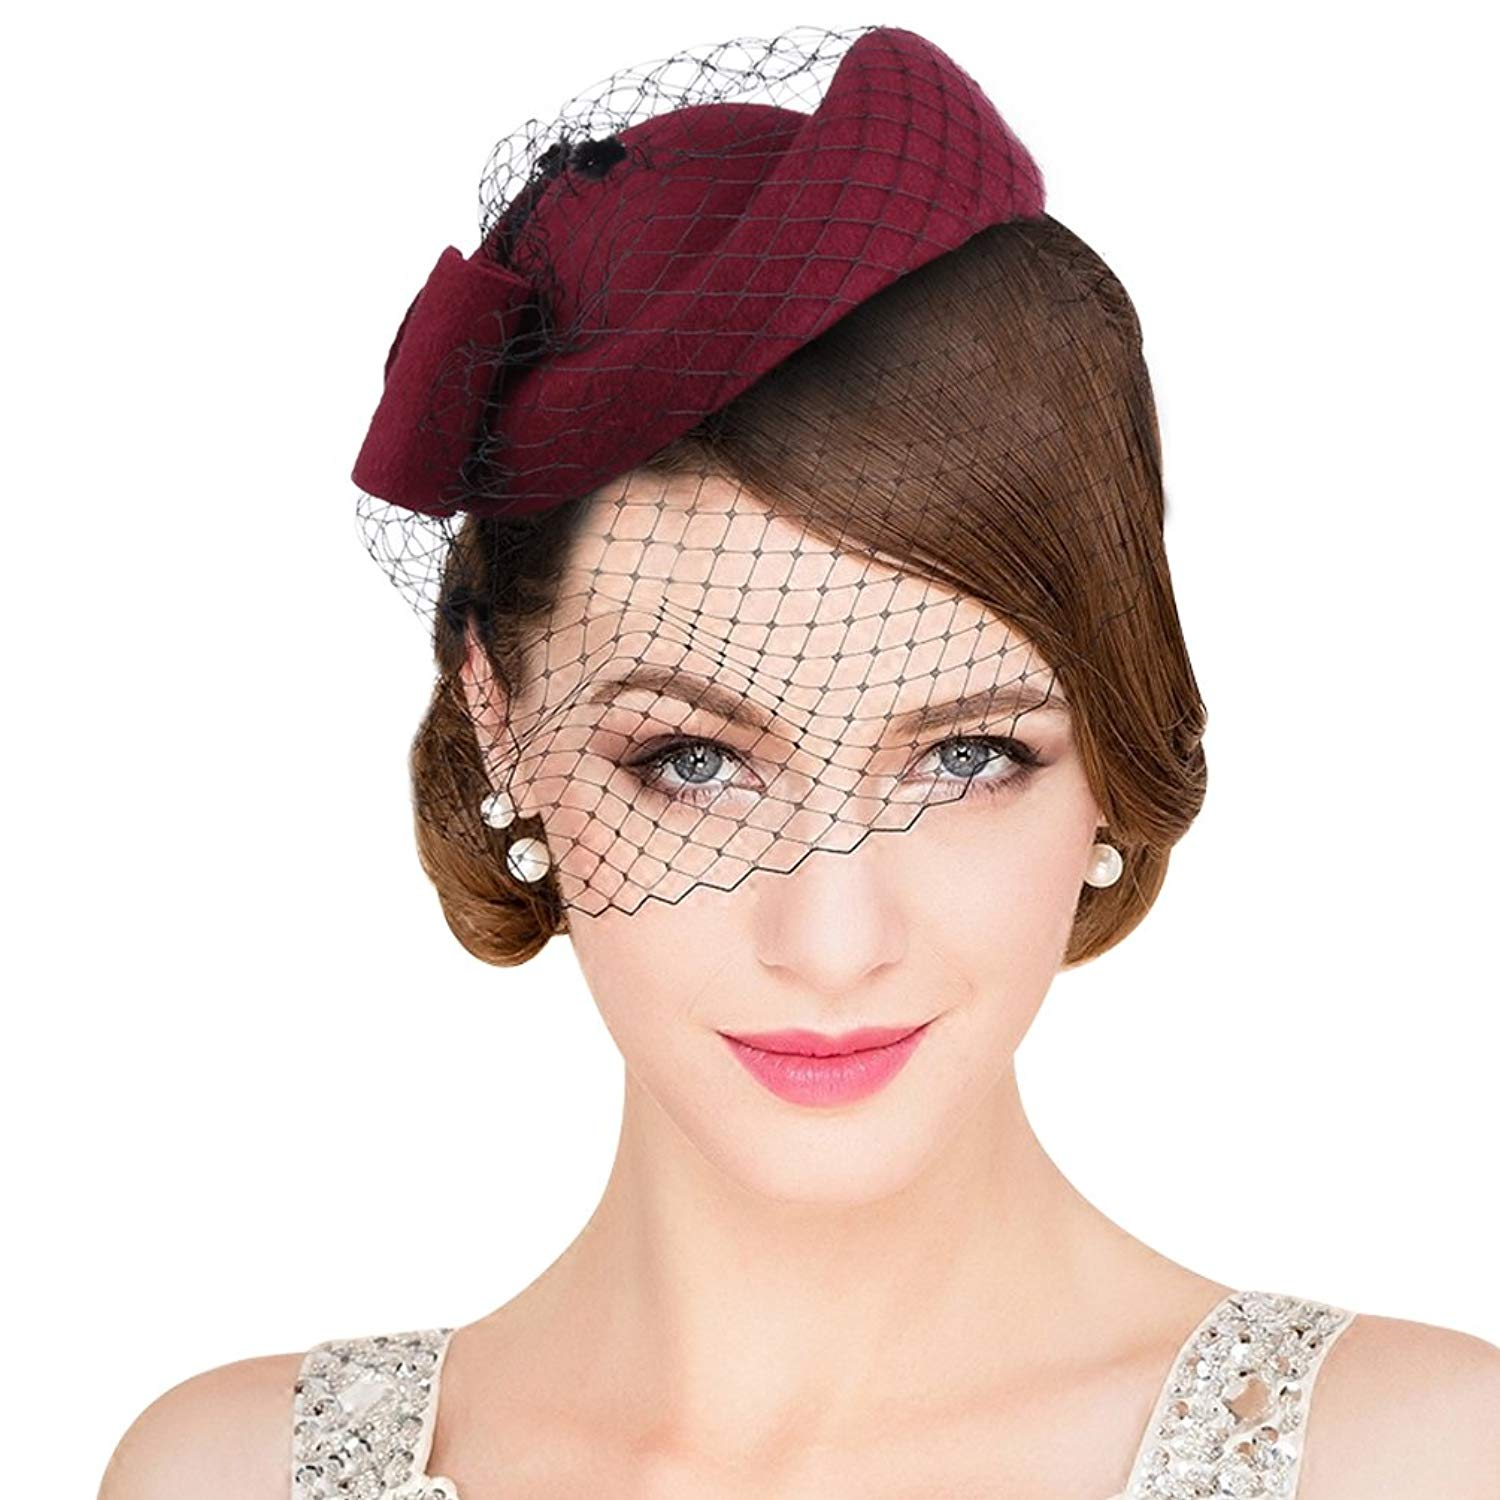 5b84b5d0edf VBIGER Women Fascinator Hats Derby Wedding Hats Vintage Hat Pillbox Hat  Woollen Felt Hat Bow Veil Party Hat for Women